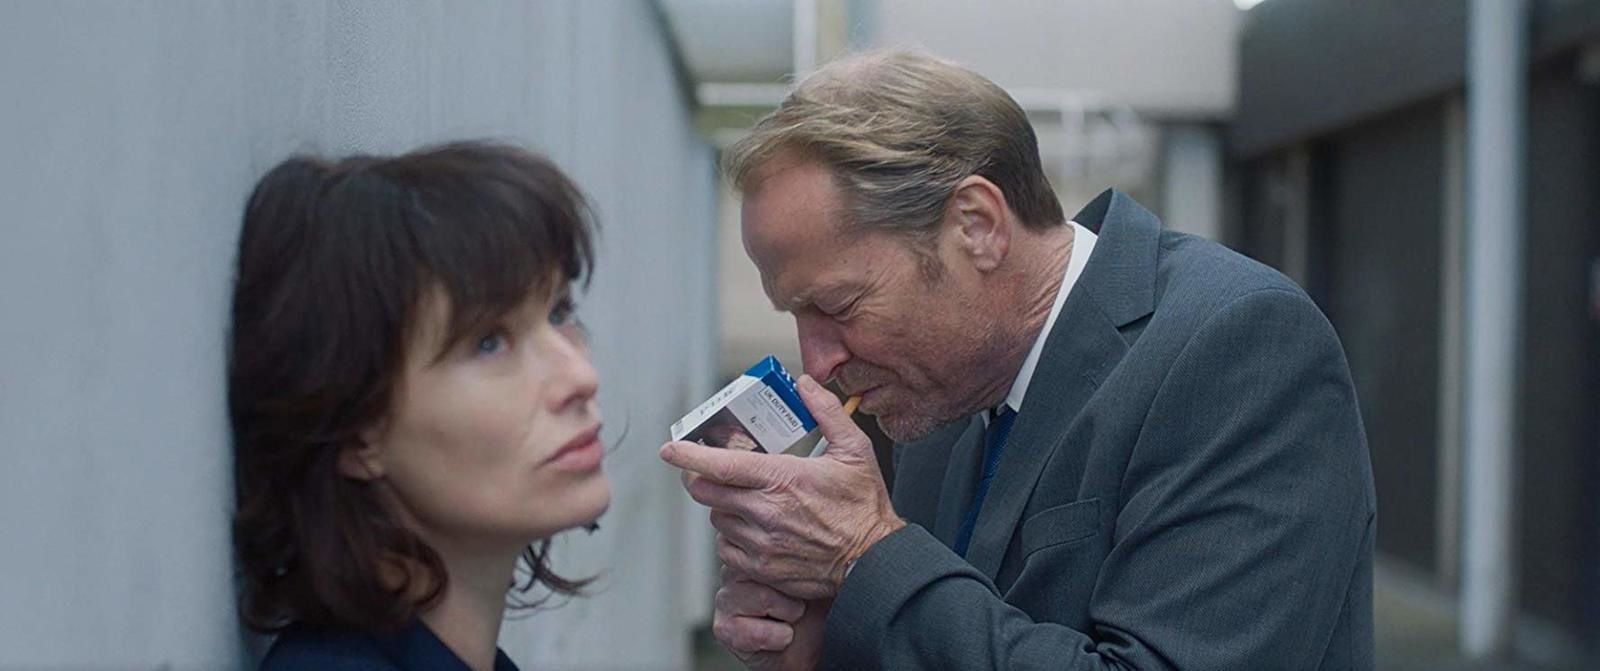 The Flood (BANDE-ANNONCE) avec Lena Headey, Iain Glen, Arsher Ali